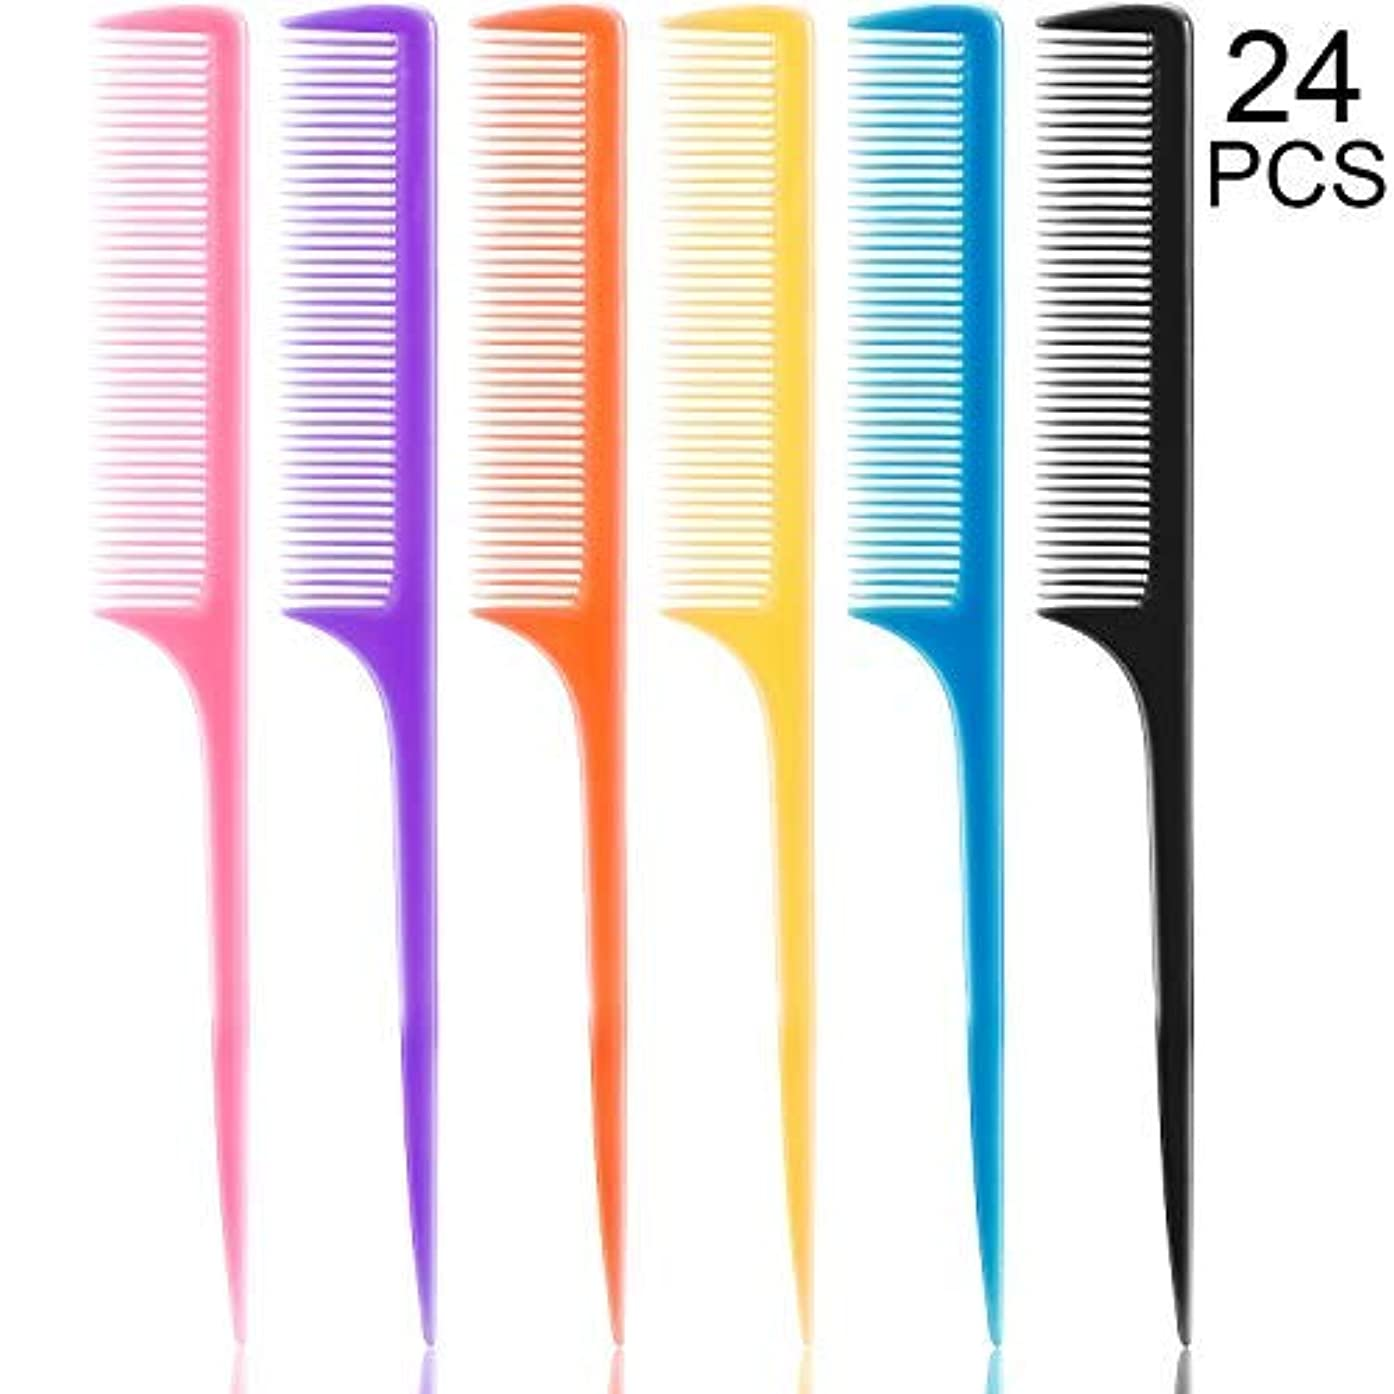 レジデンス強調するマットレス24 Pieces Plastic Rat Tail Combs 8.5 Inch Fine-tooth Hair Combs Pin Tail Hair Styling Combs with Thin and Long...